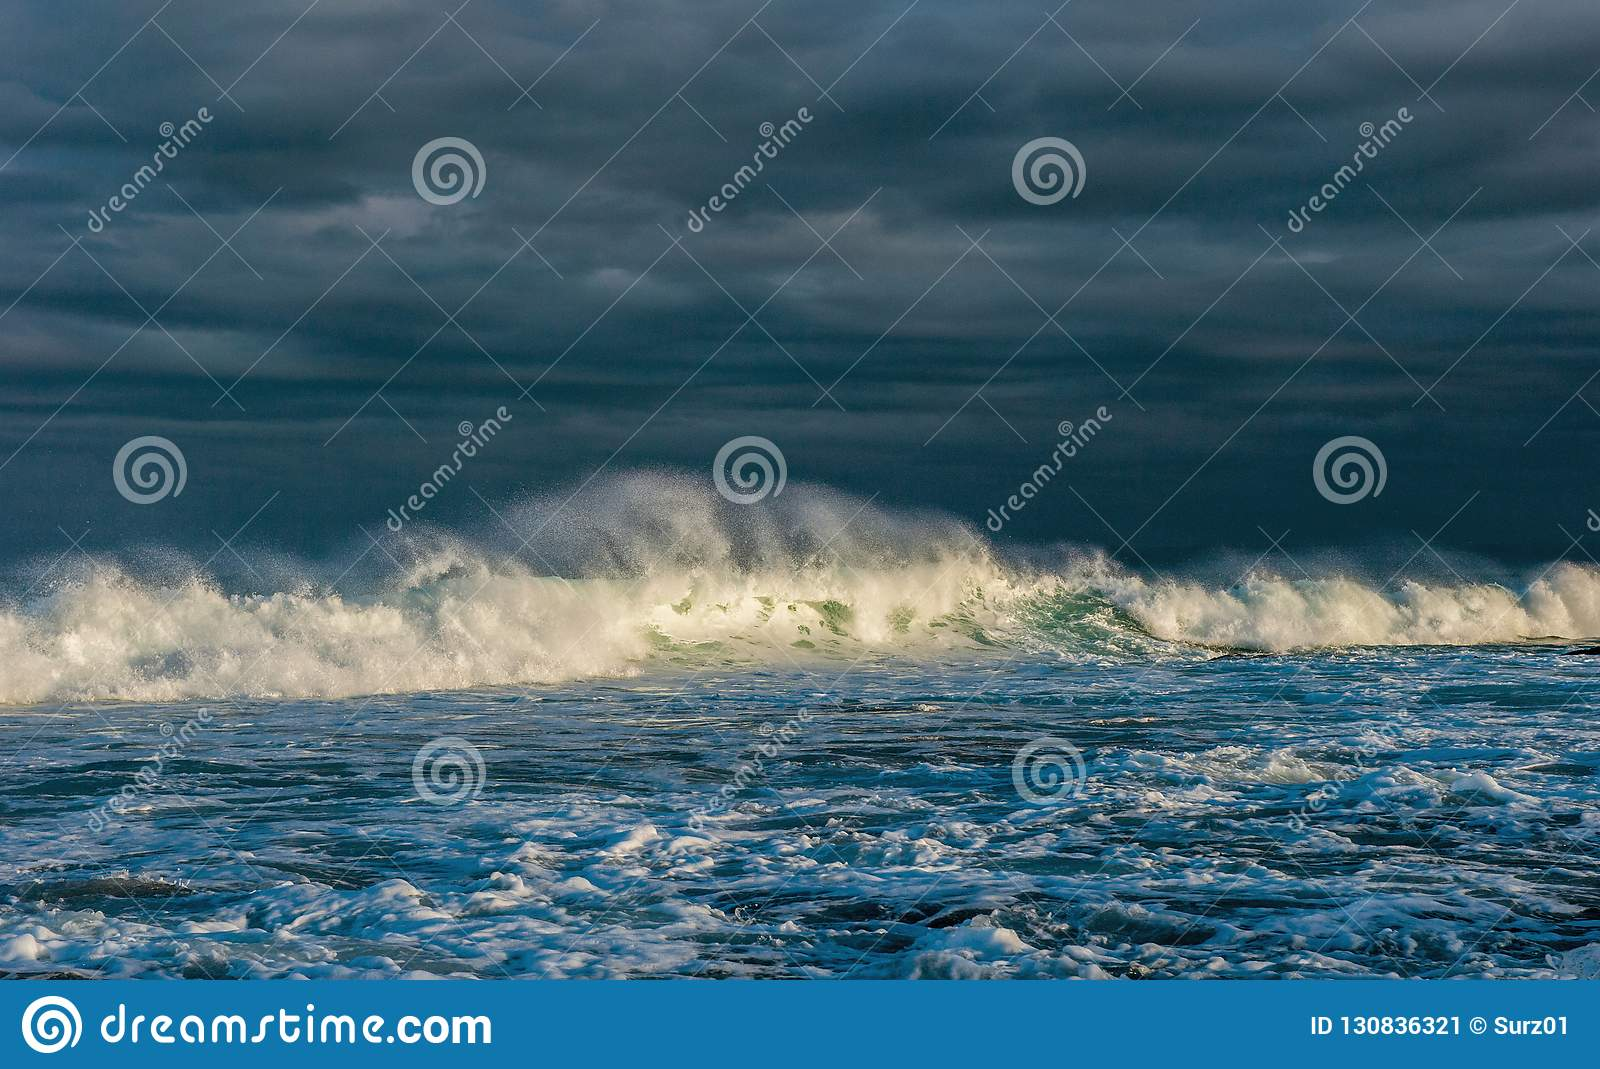 Ocean waves. Stormy weather, clouds sky background. Seascape.